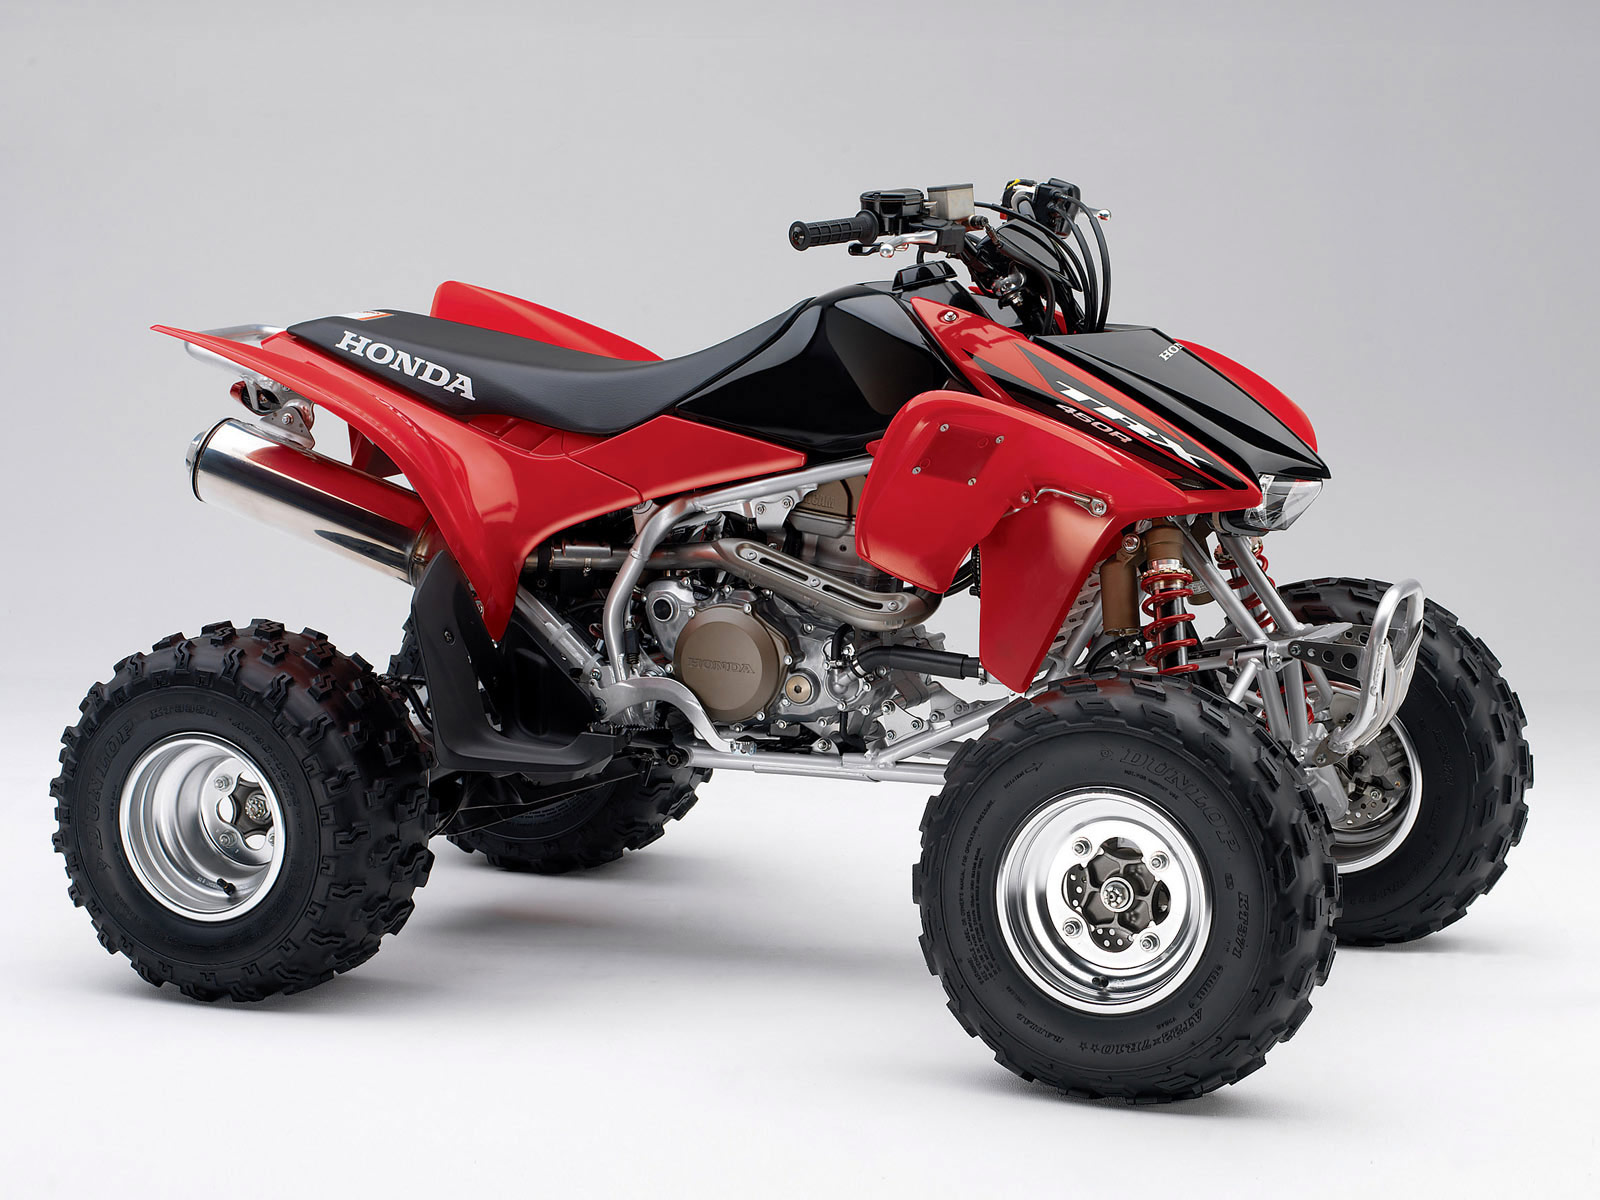 Honda Four Wheelers For Sale >> 2006 HONDA TRX450R ATV pictures, features